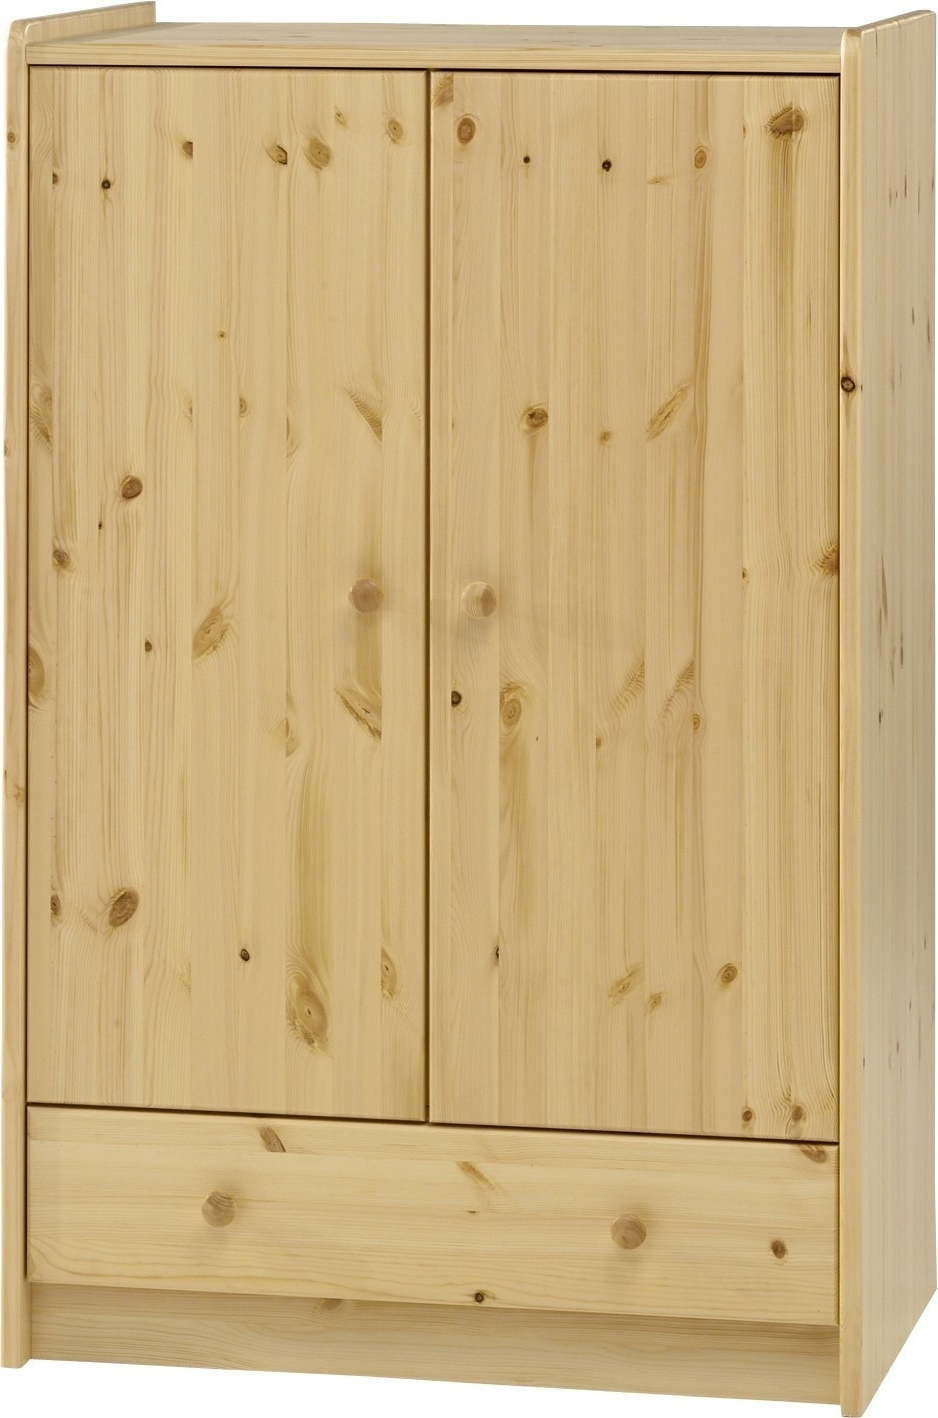 Steens For Kids Pine Low Wardrobe Intended For Most Current Natural Pine Wardrobes (View 2 of 15)